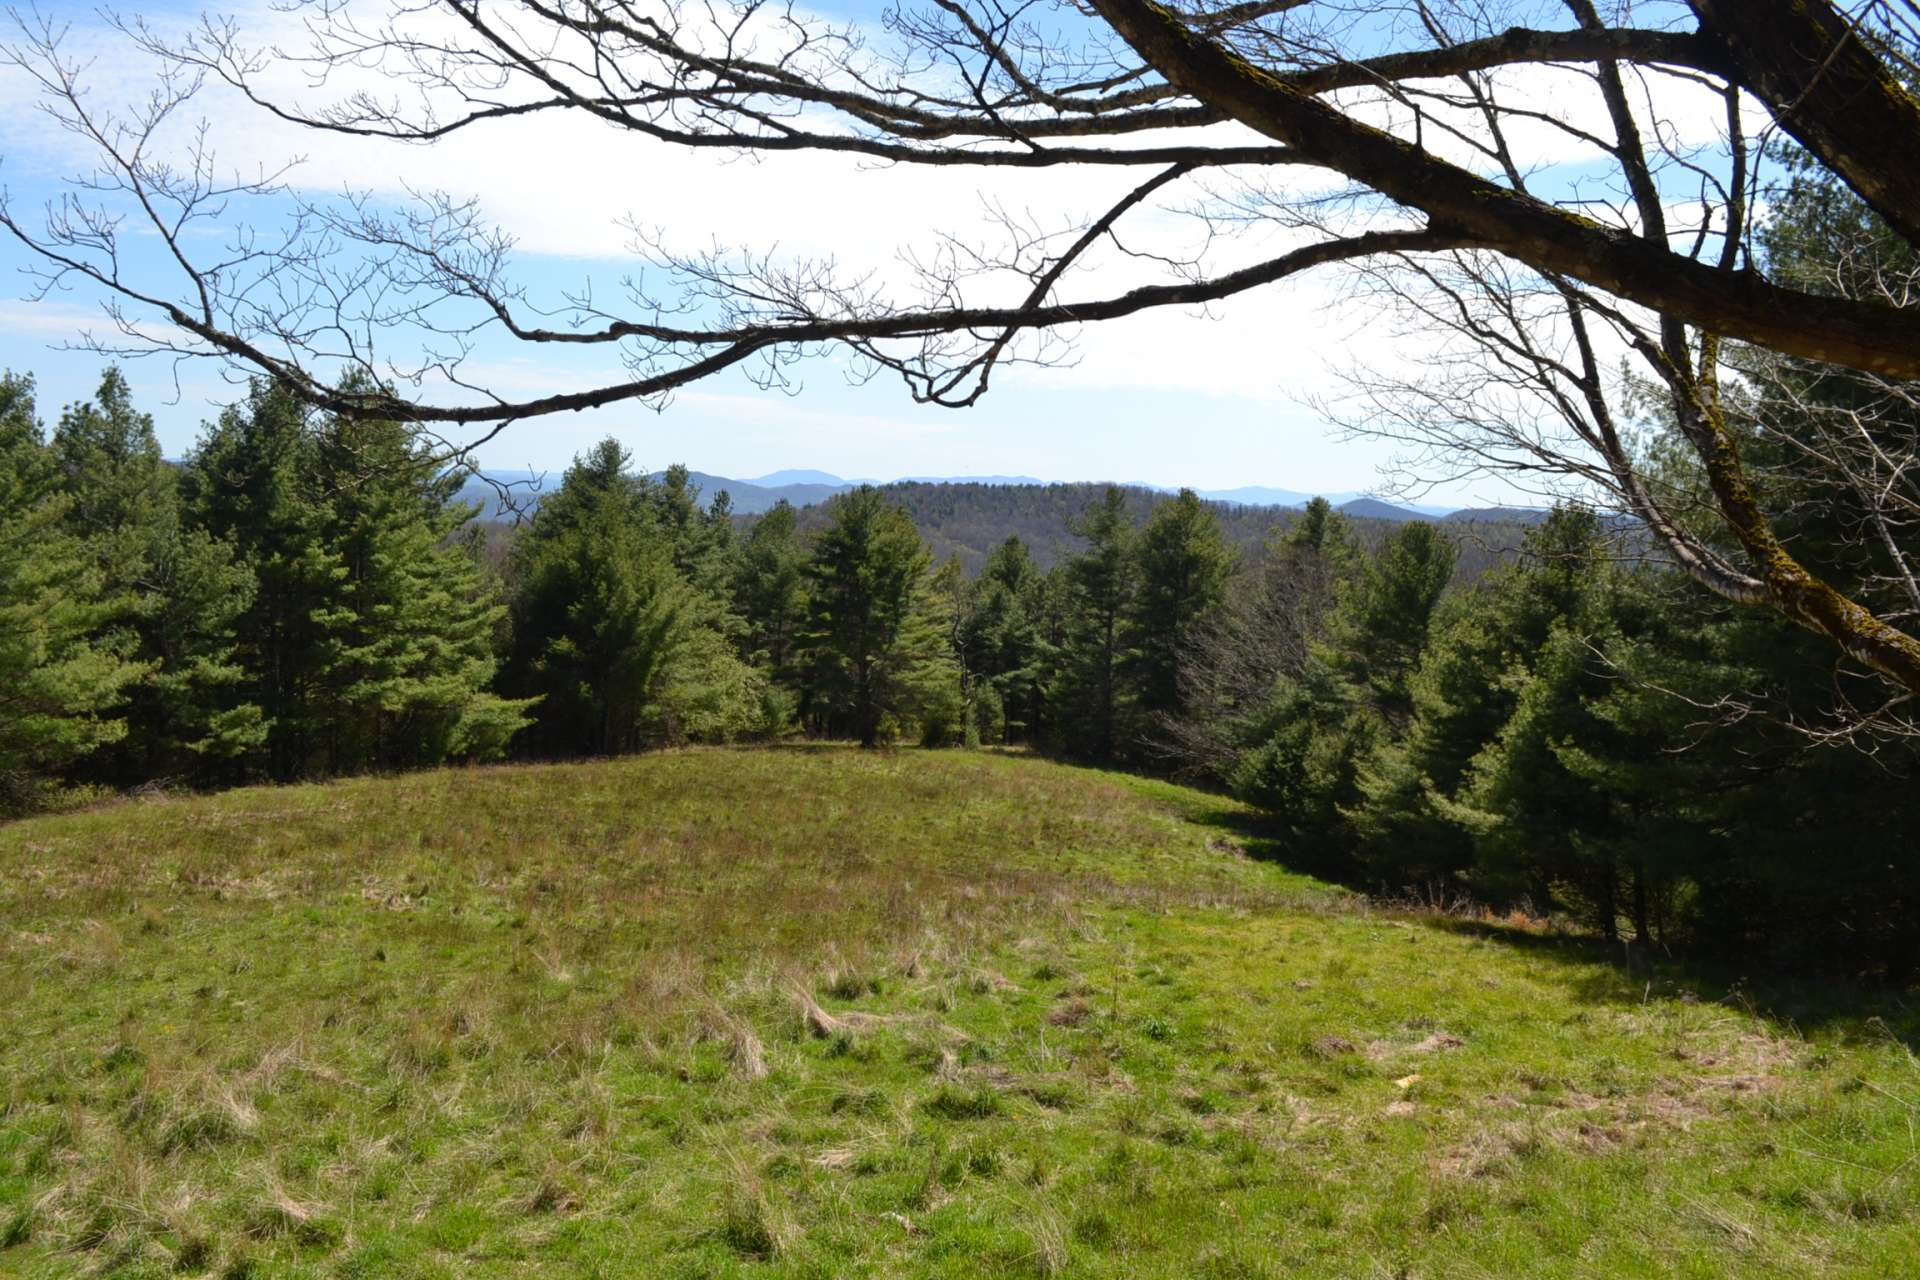 Multiple home sites give you a choice of building your private mountain retreat to enjoy amazing Blue Ridge Mountain views or surrounded by hardwood forest where the only sound you hear is the call of a lone whippoorwill on the next ridge.